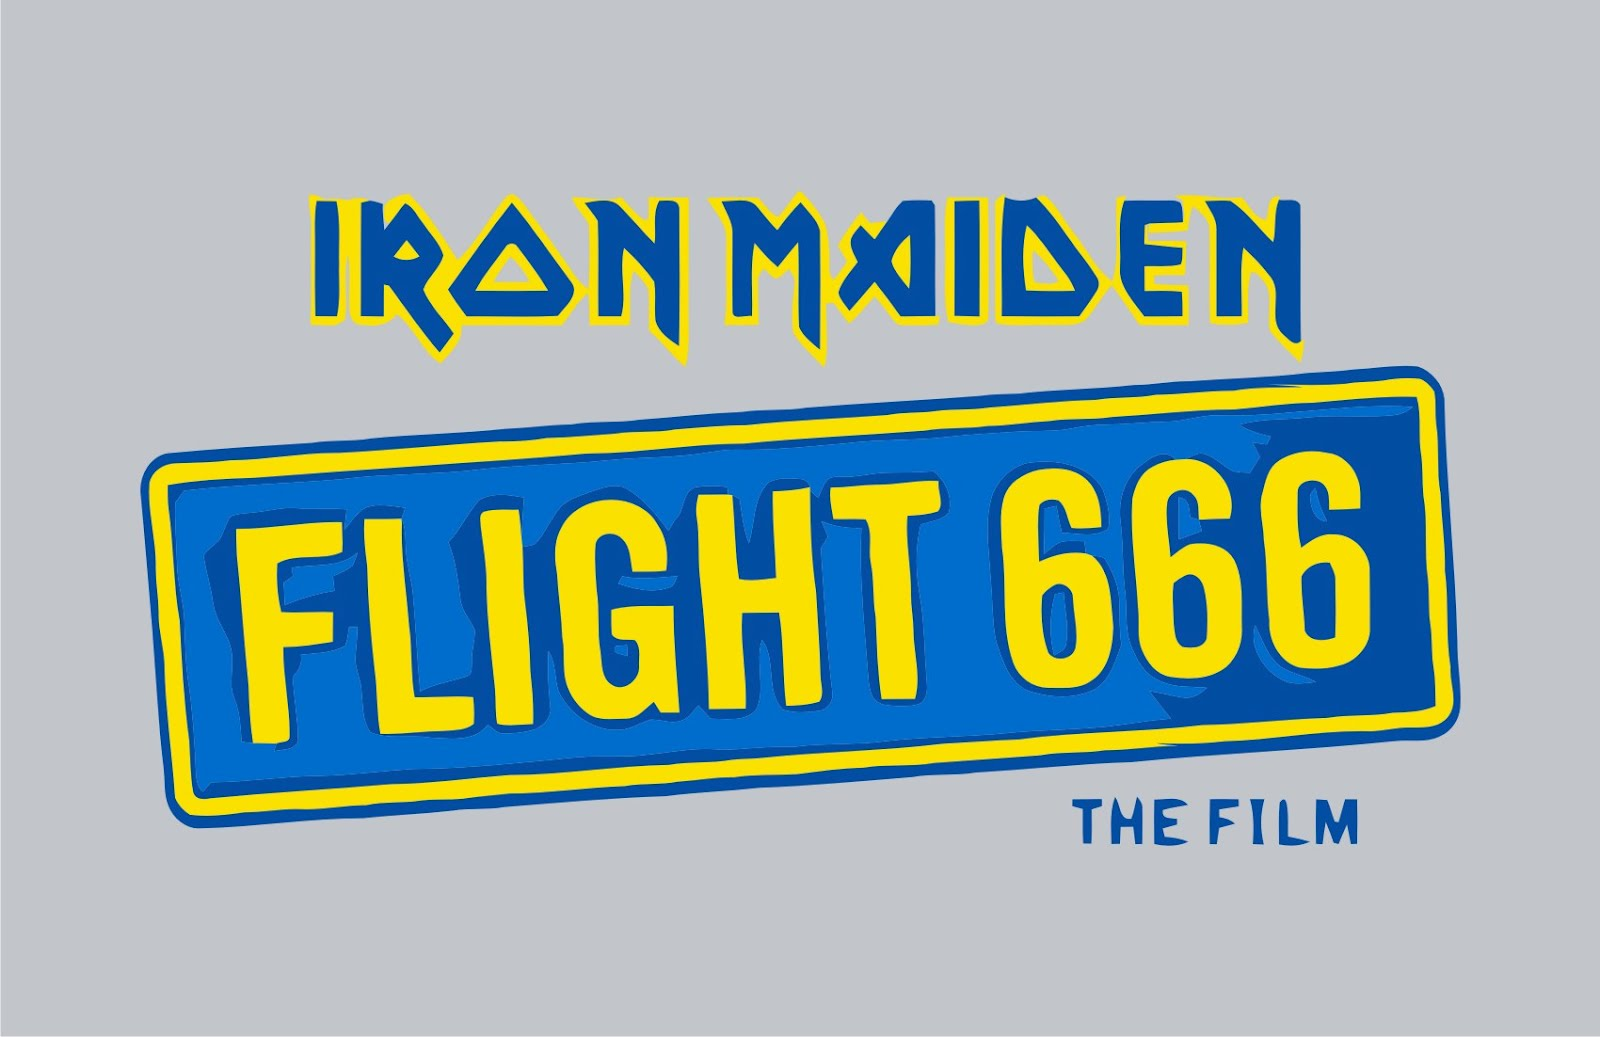 iron_maiden-flight_666_back_vector